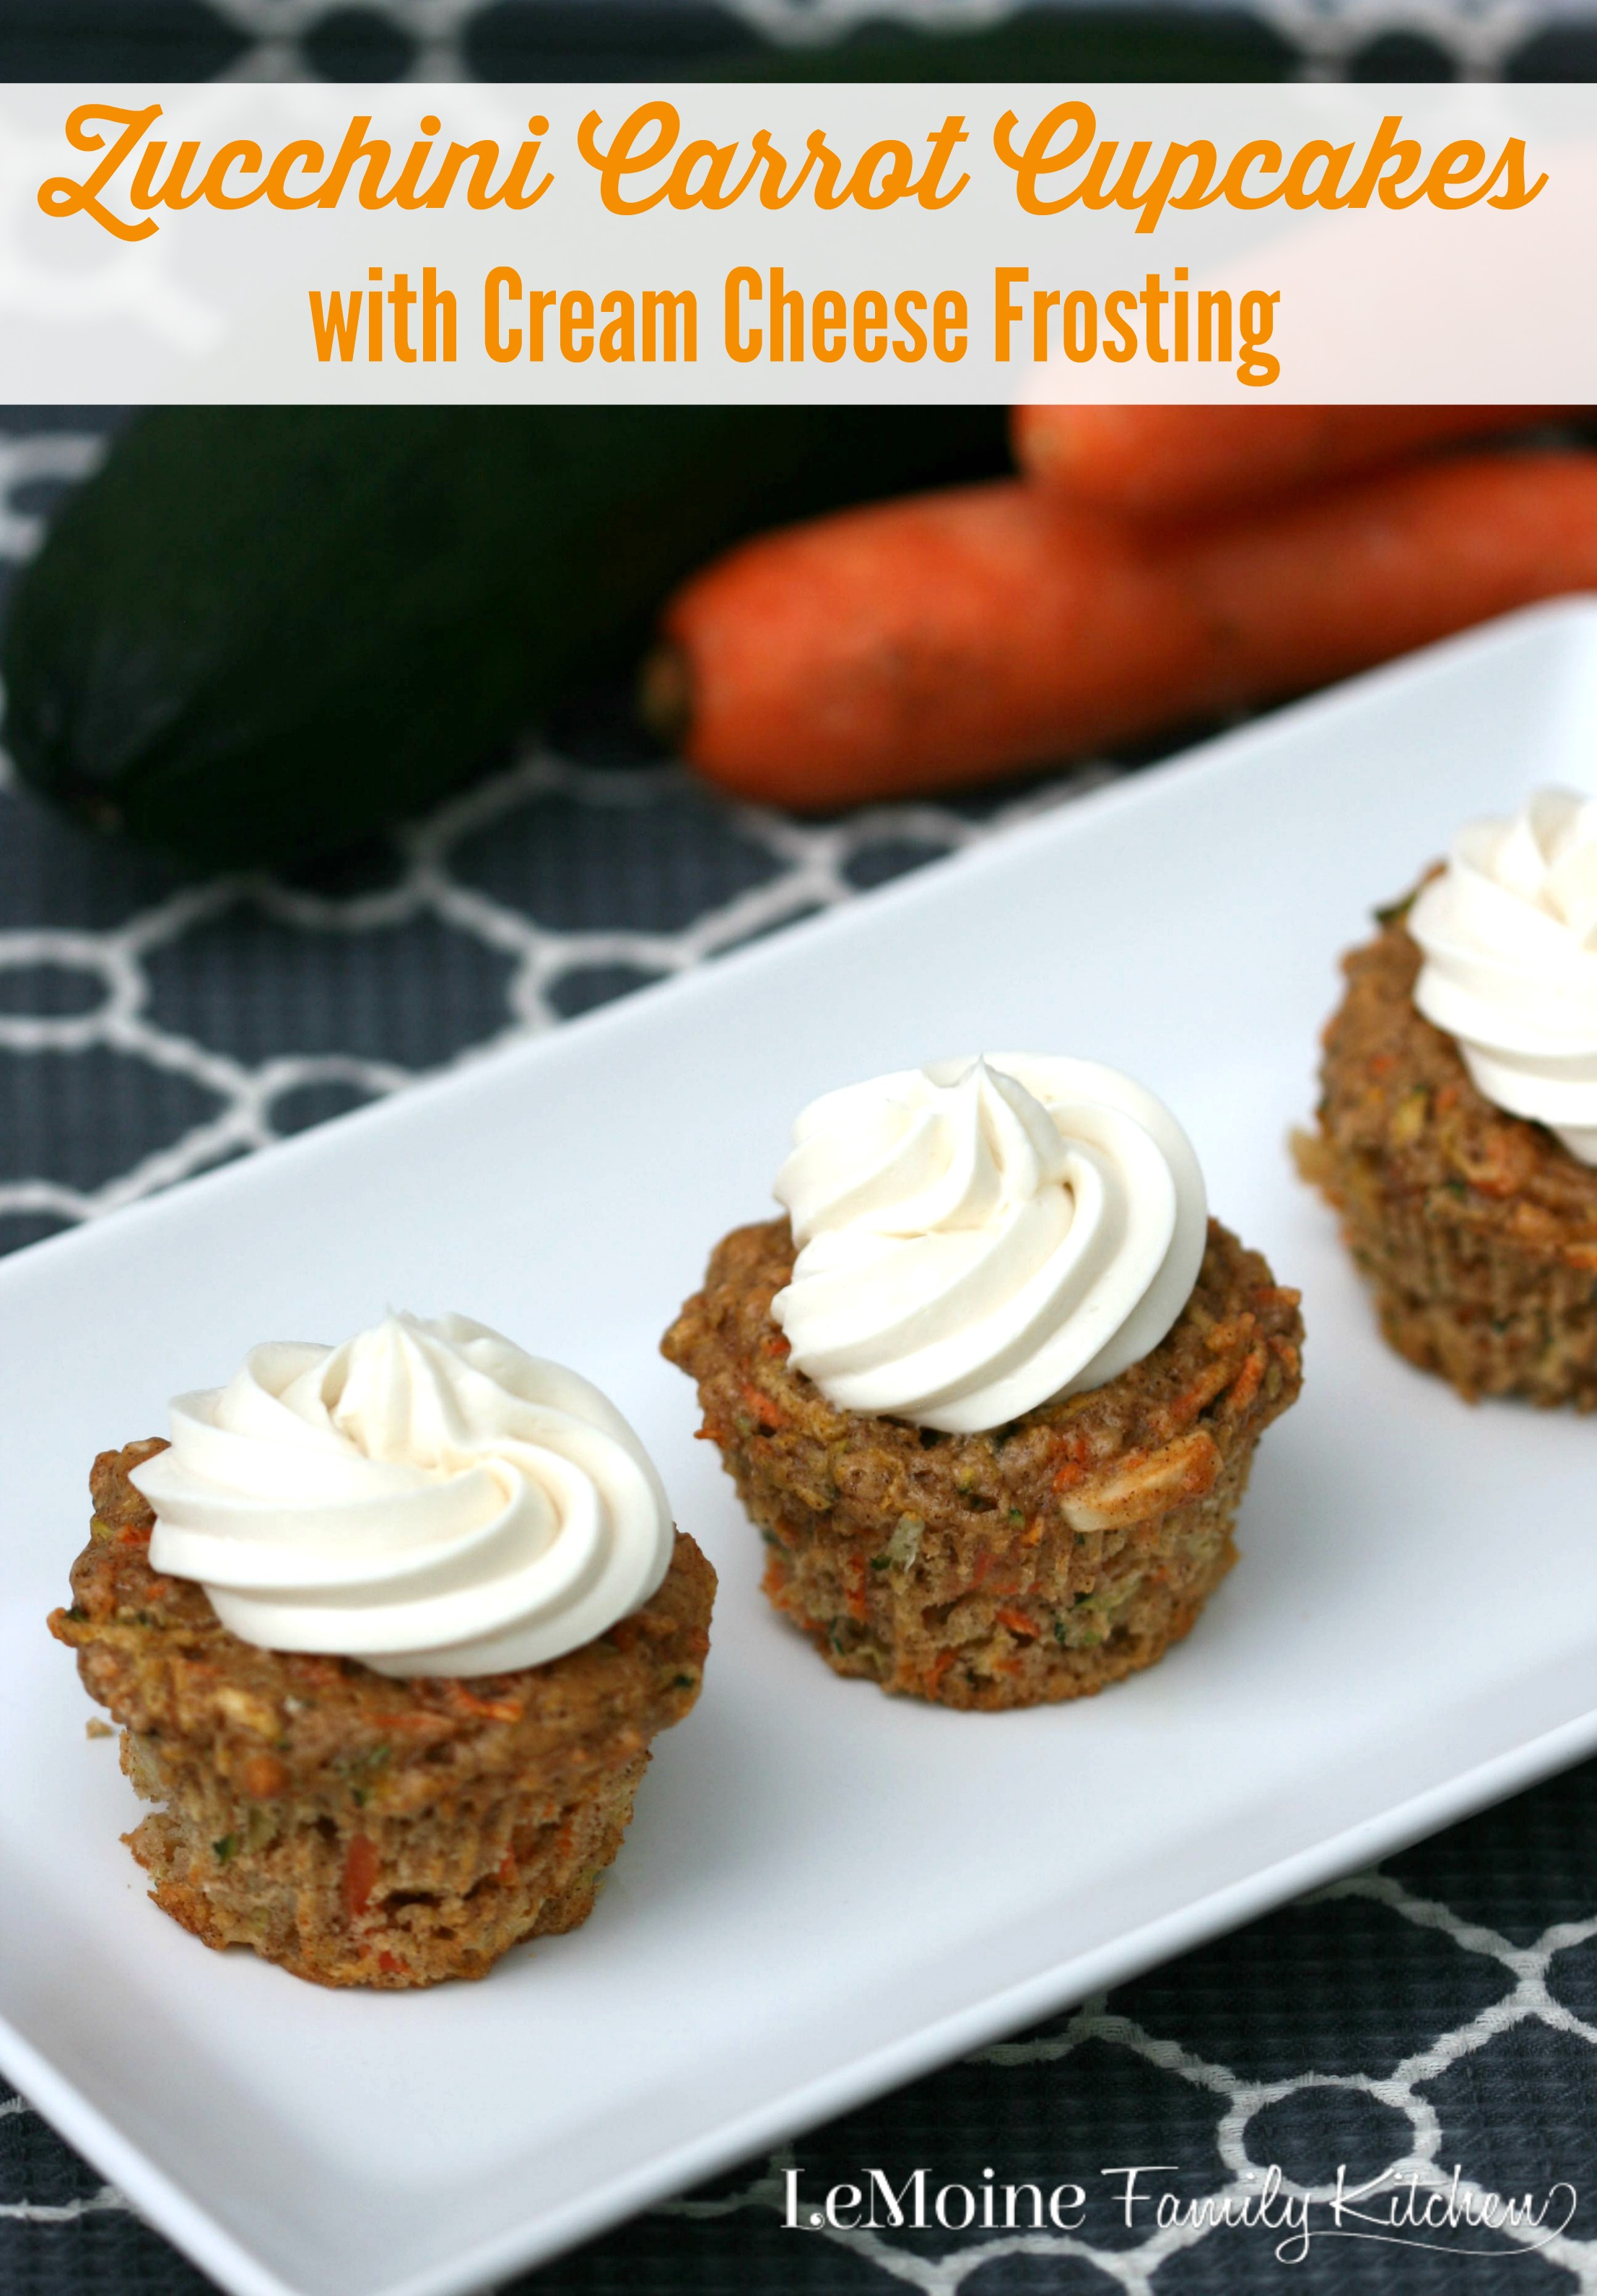 Zucchini Carrot Cupcakes with Cream Cheese Frosting | LeMoine Family Kitchen. Packed with zucchini & carrots, a hint of sweetness and topped with a perfect cream cheese frosting.